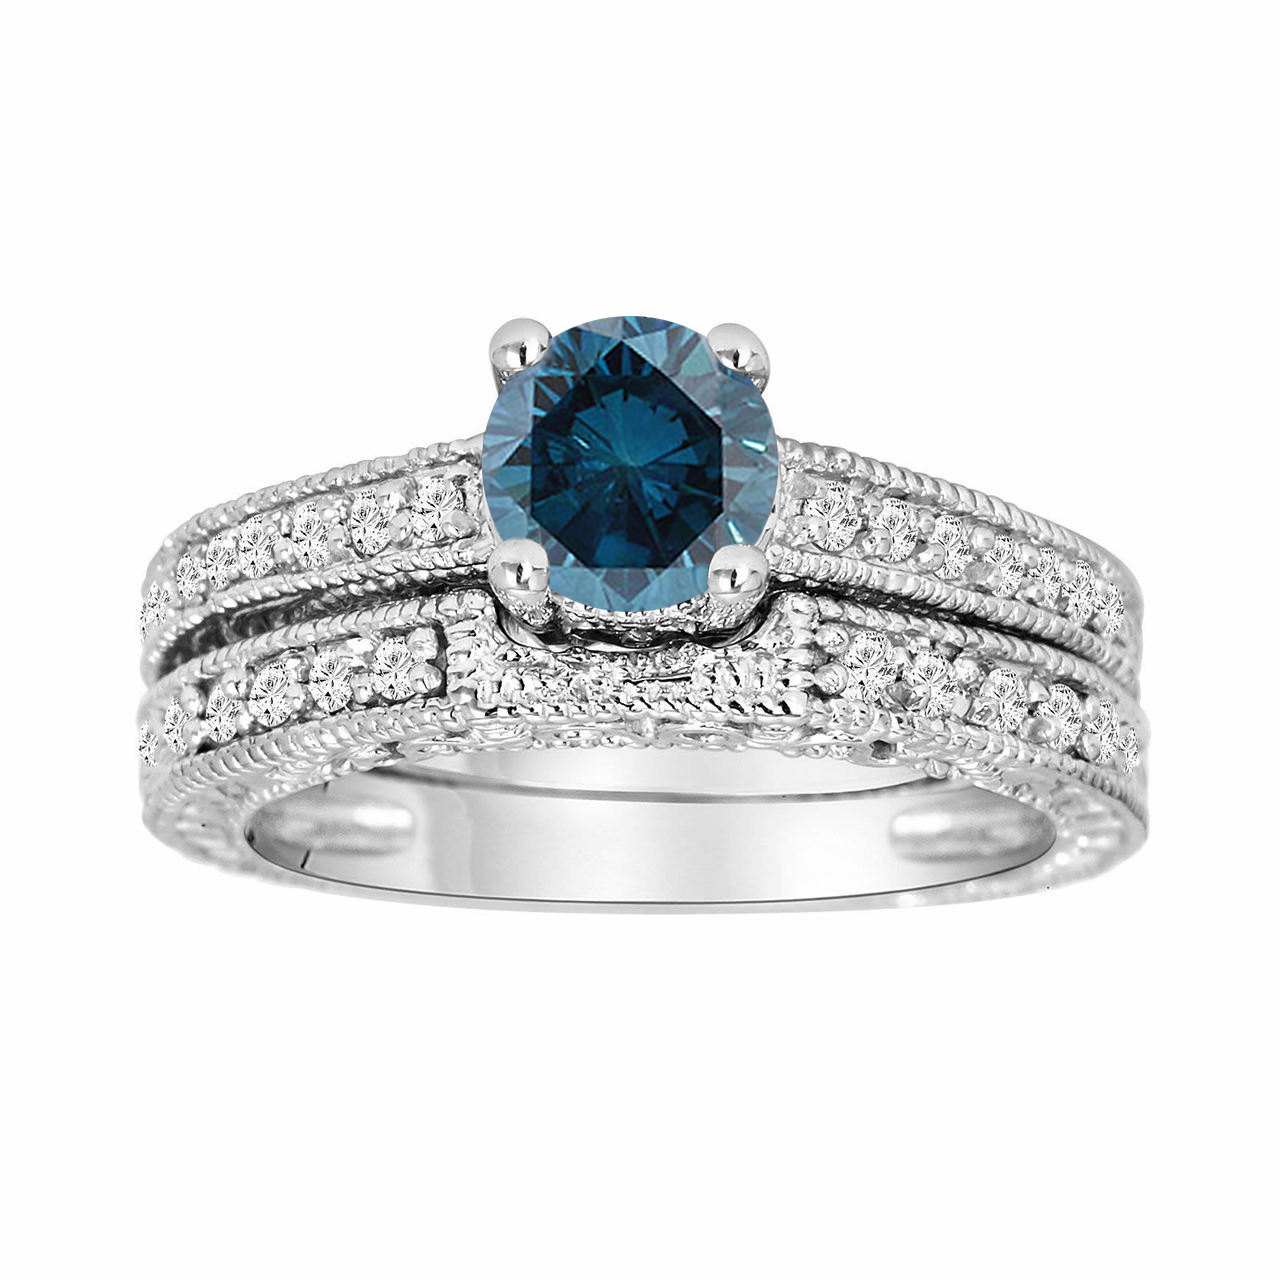 Antique Style 4 2mm Platinum Men S Wedding Band With: Platinum Fancy Blue Diamond Engagement Ring And Wedding